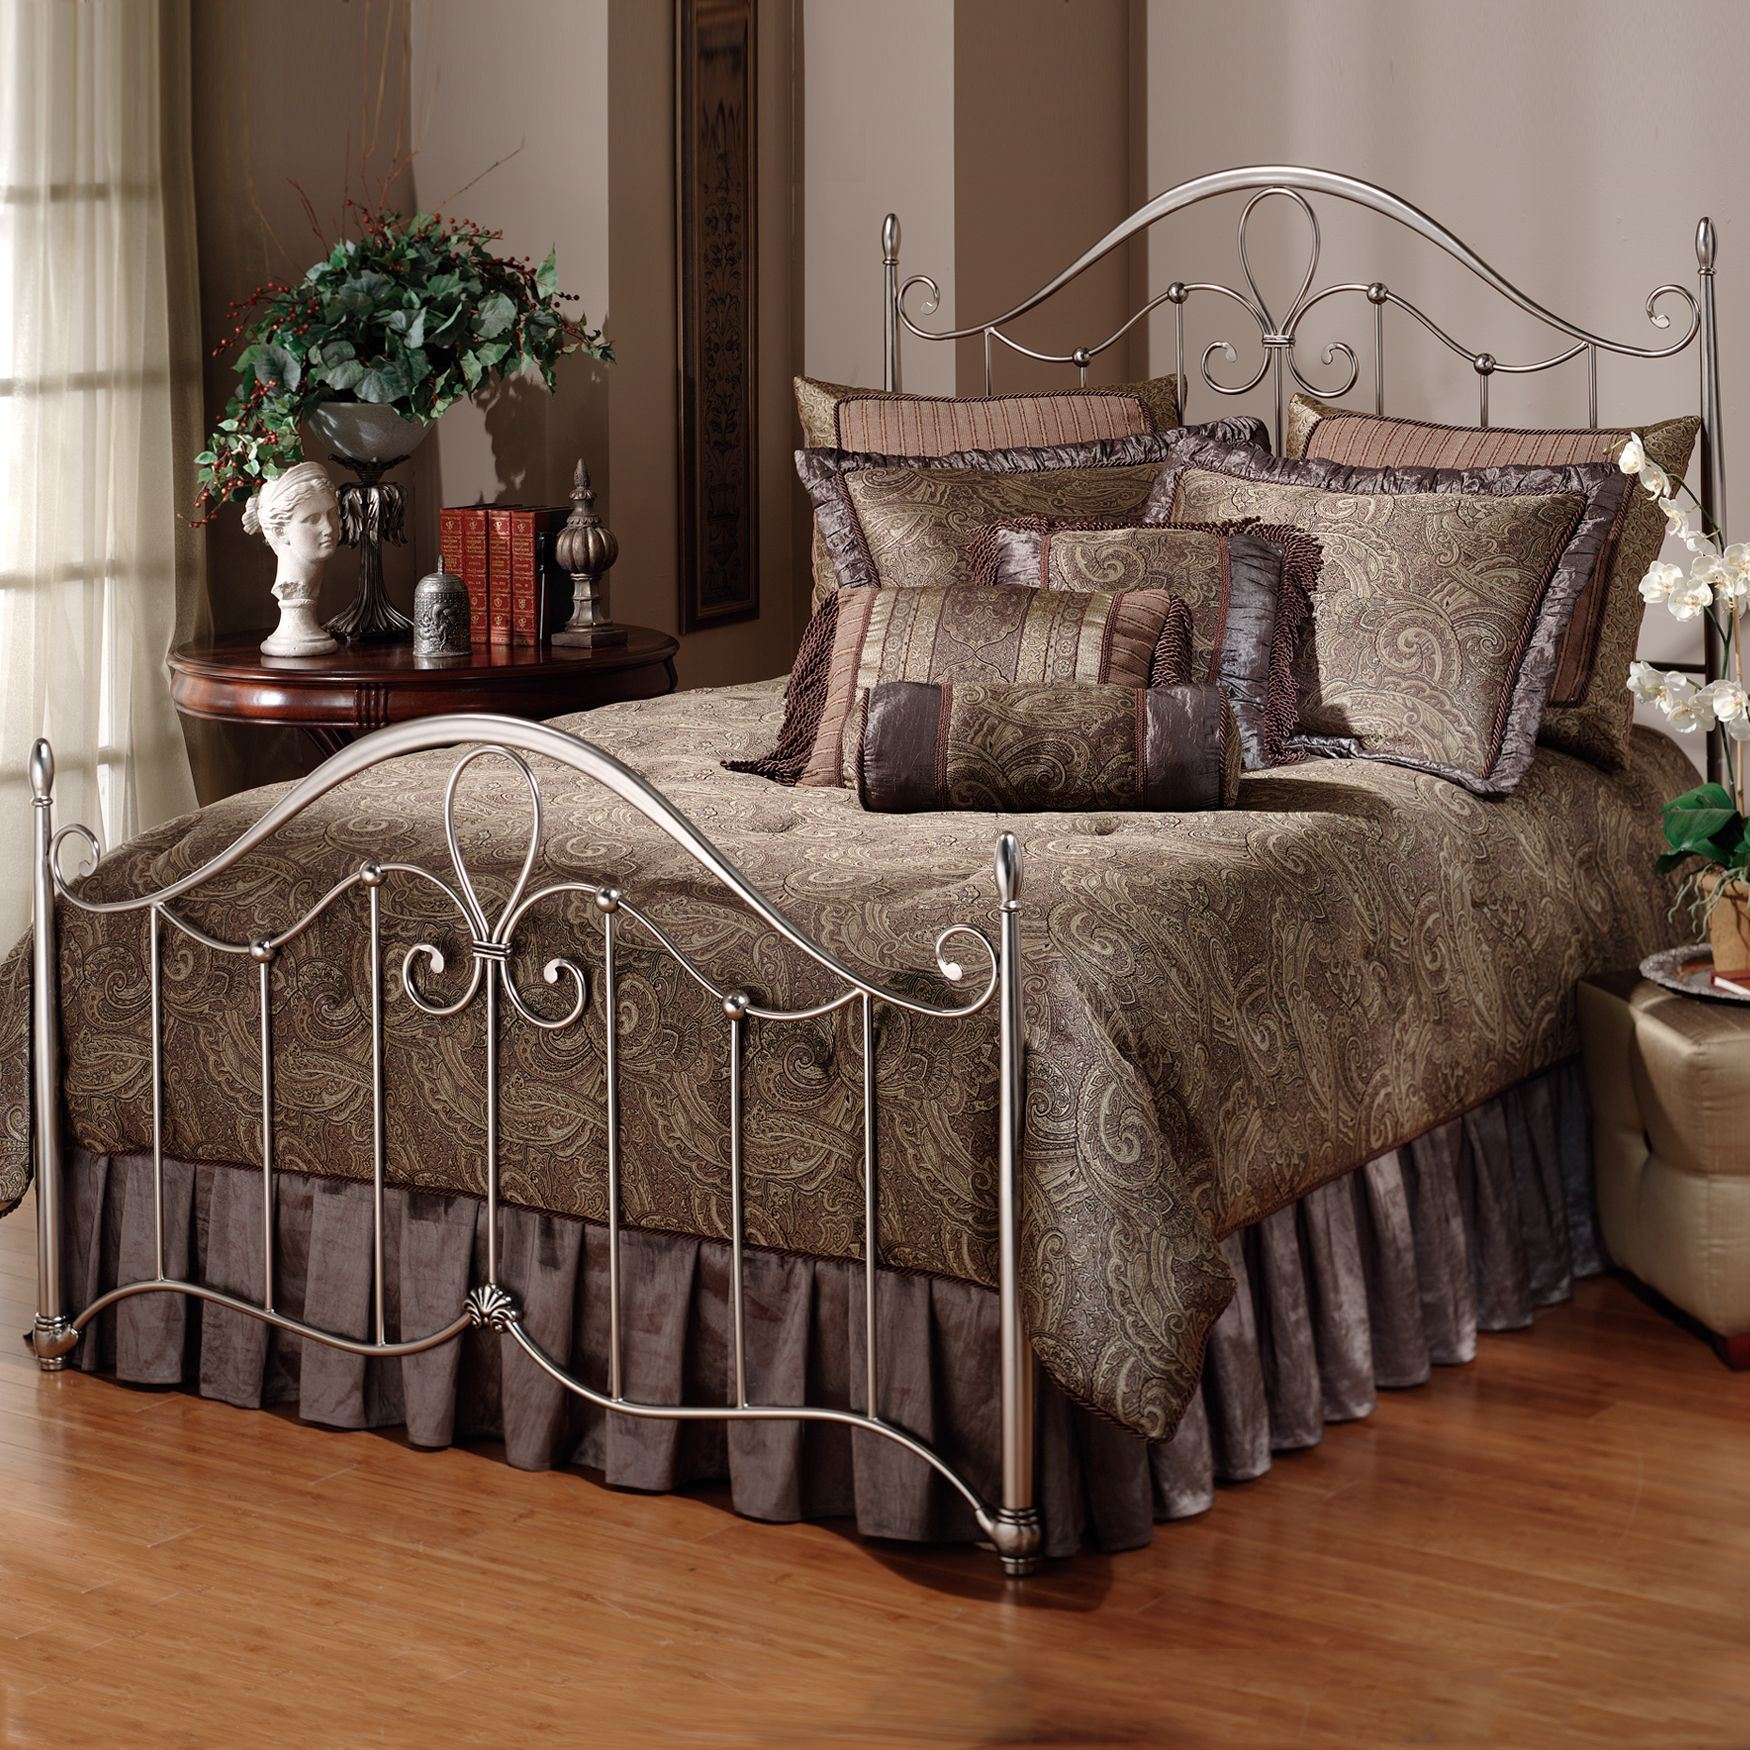 Queen Bed with Bed Frame, 83½'Lx60¾'Wx55'H,